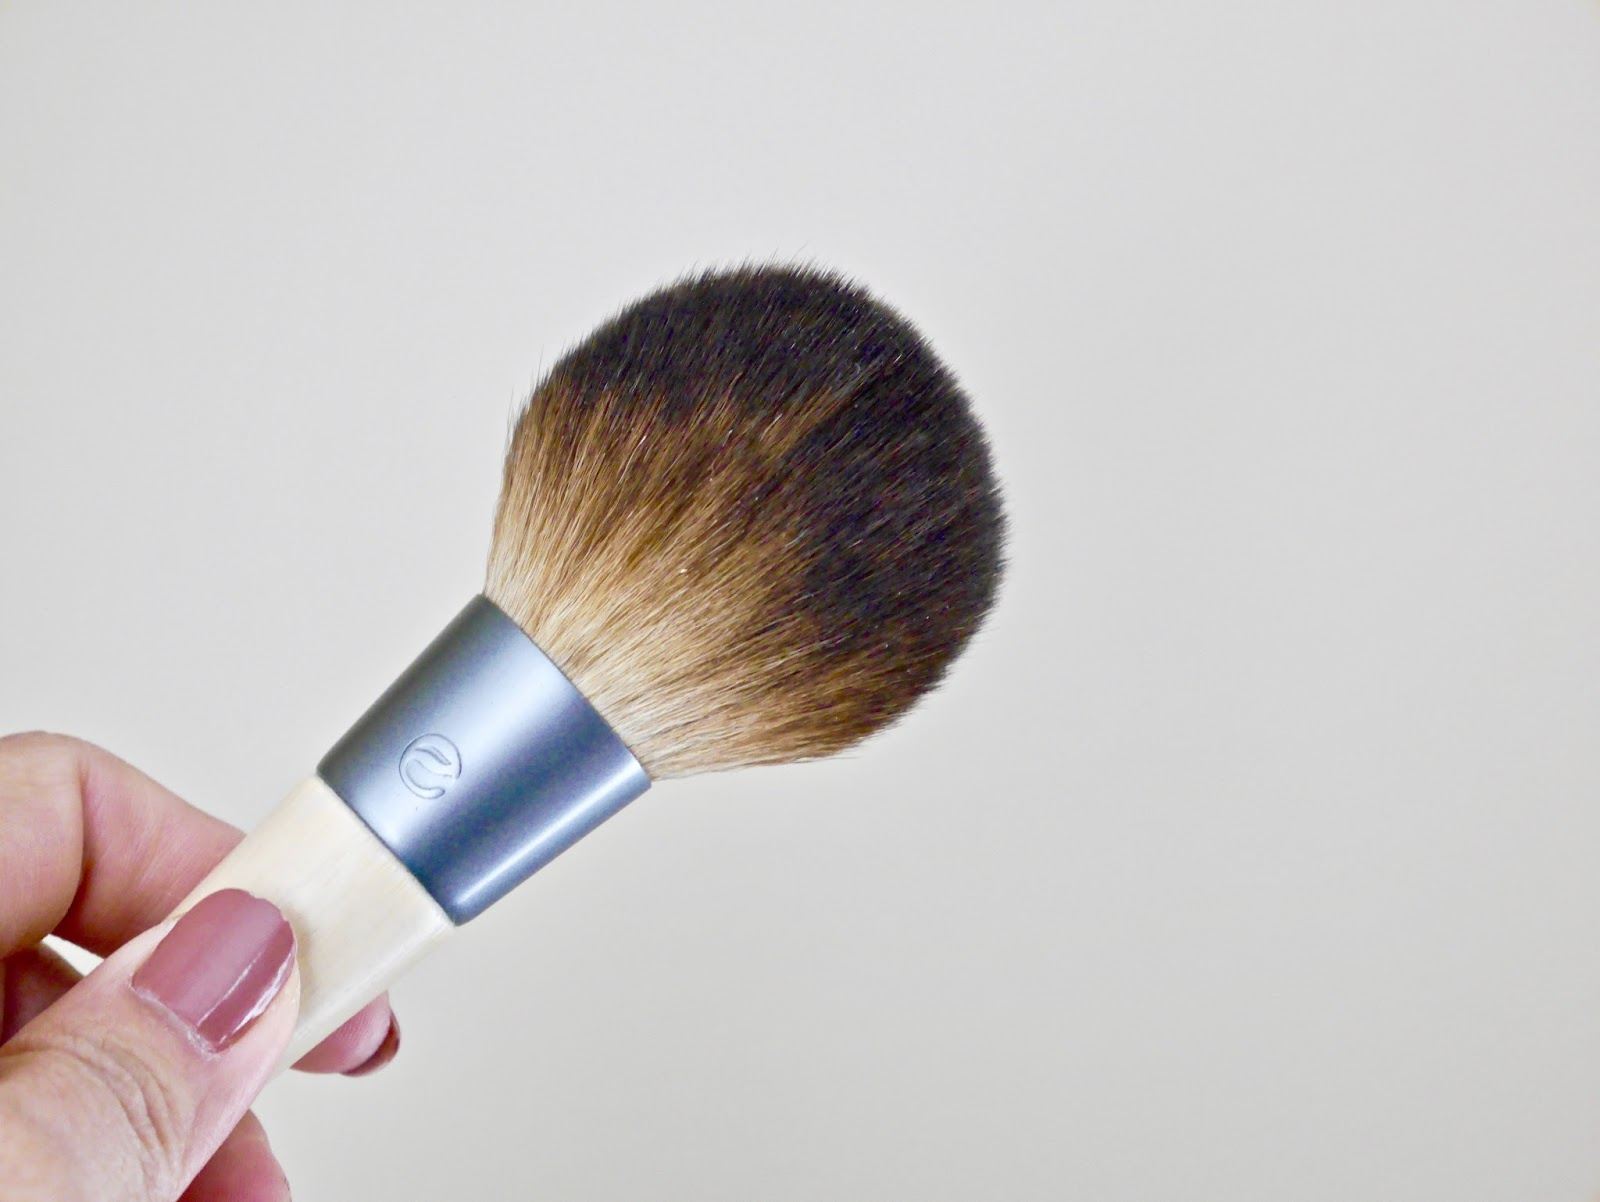 eco-friendly, cruelty free, makeup brushes, brushes, Canadian beauty